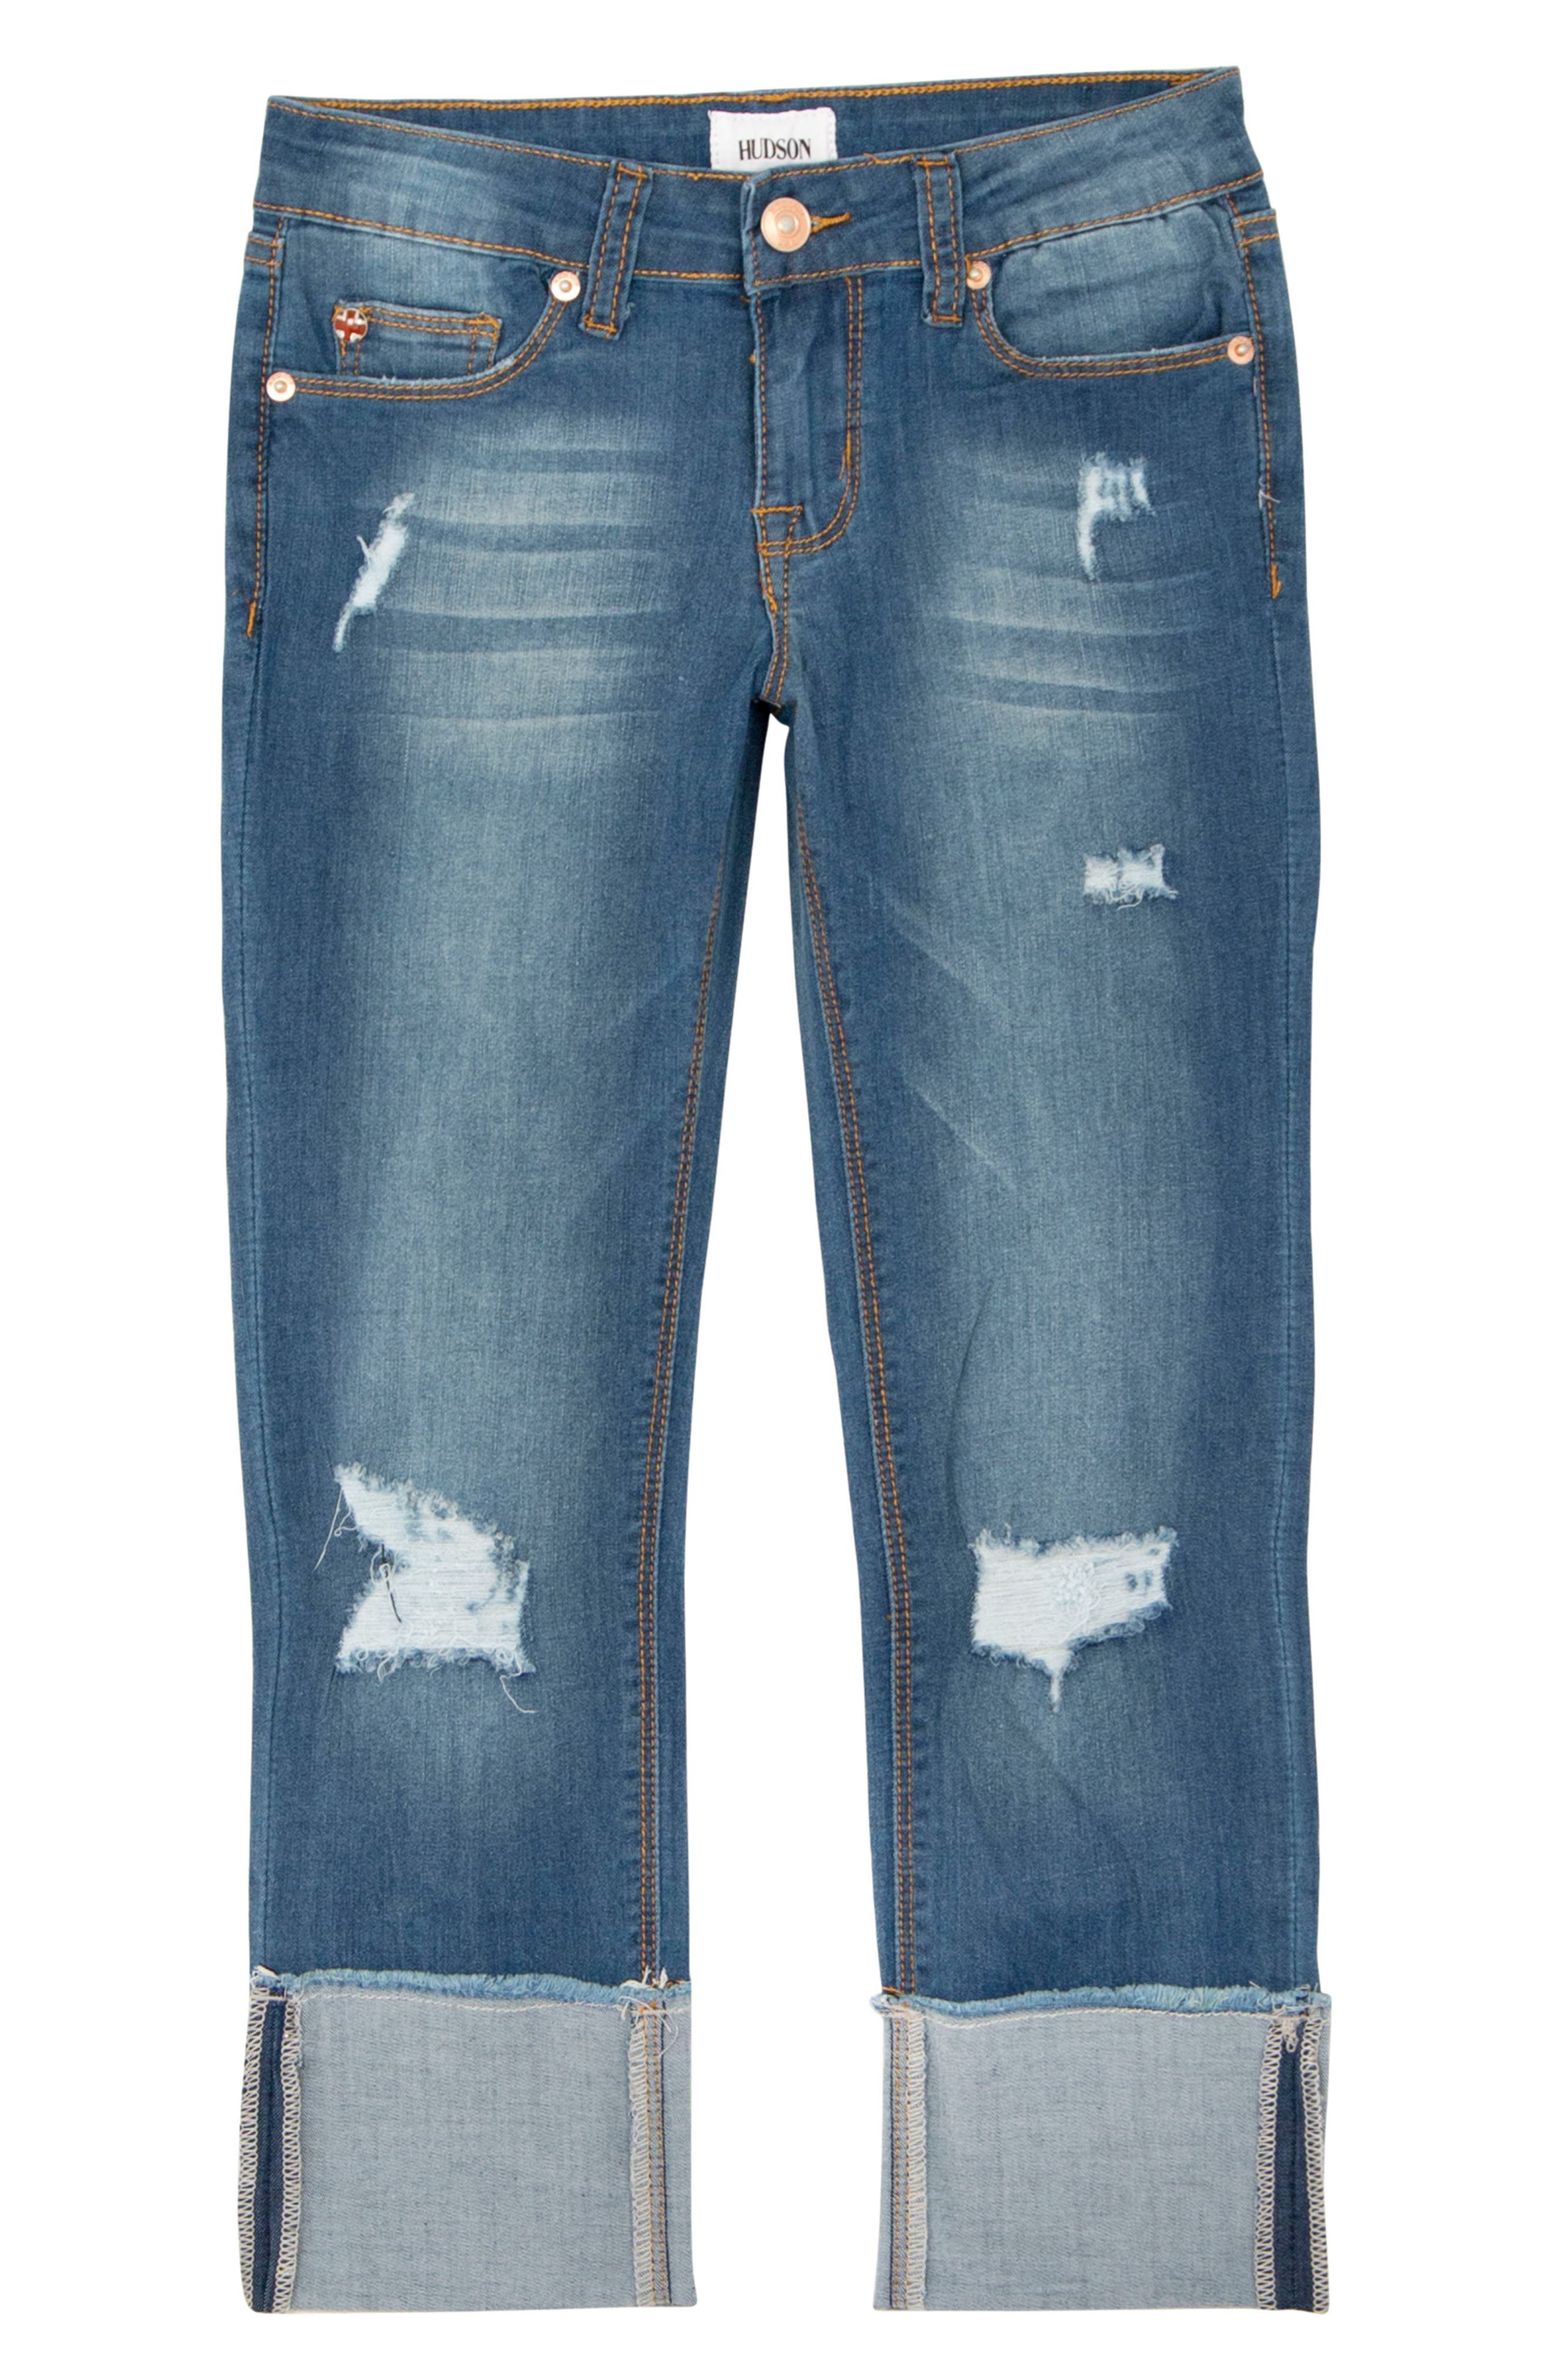 Jessa Crop Skinny Jeans,                         Main,                         color, Jetty Blue